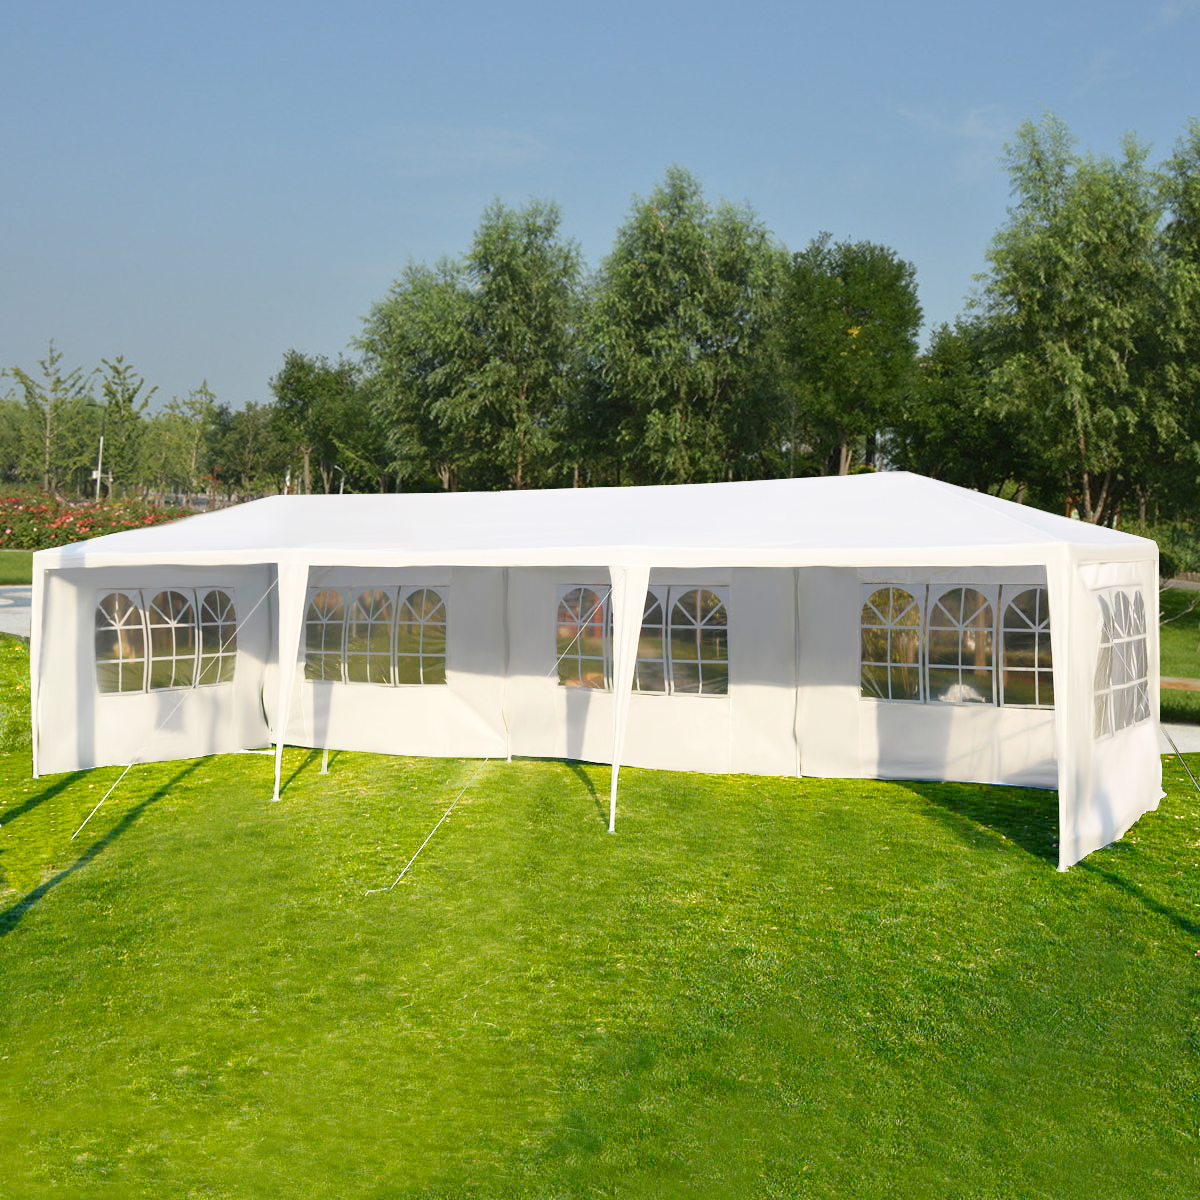 Costway 10u0027x30u0027 Party Wedding Outdoor Patio Tent Canopy Heavy duty Gazebo Pavilion Event & Outdoor Canopy Cover